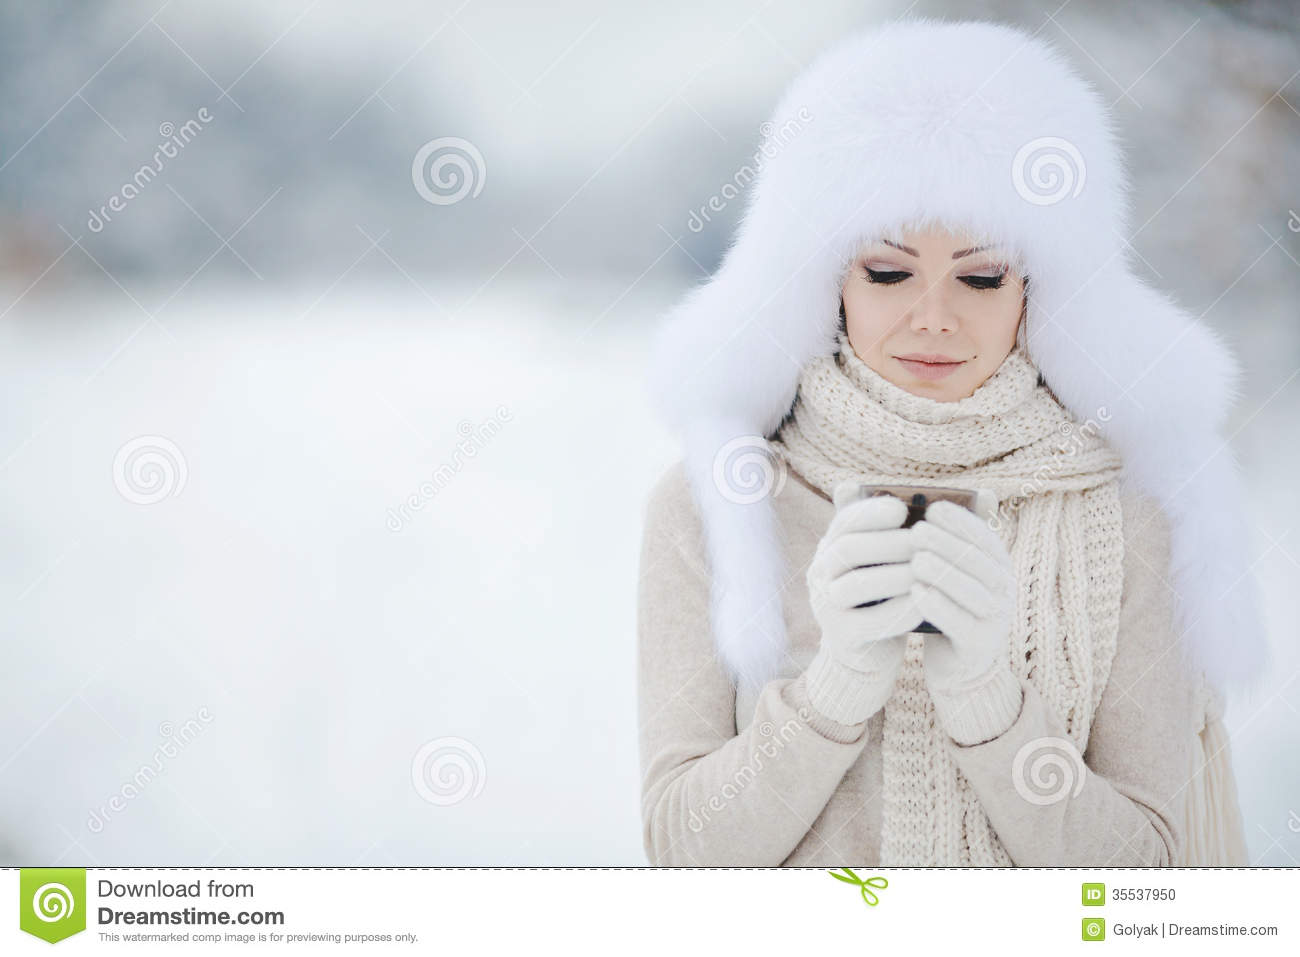 Snow Plow Prices >> Christmas New Year Snow Winter Beautiful Girl In White Hat Nature Stock Photo - Image: 35537950